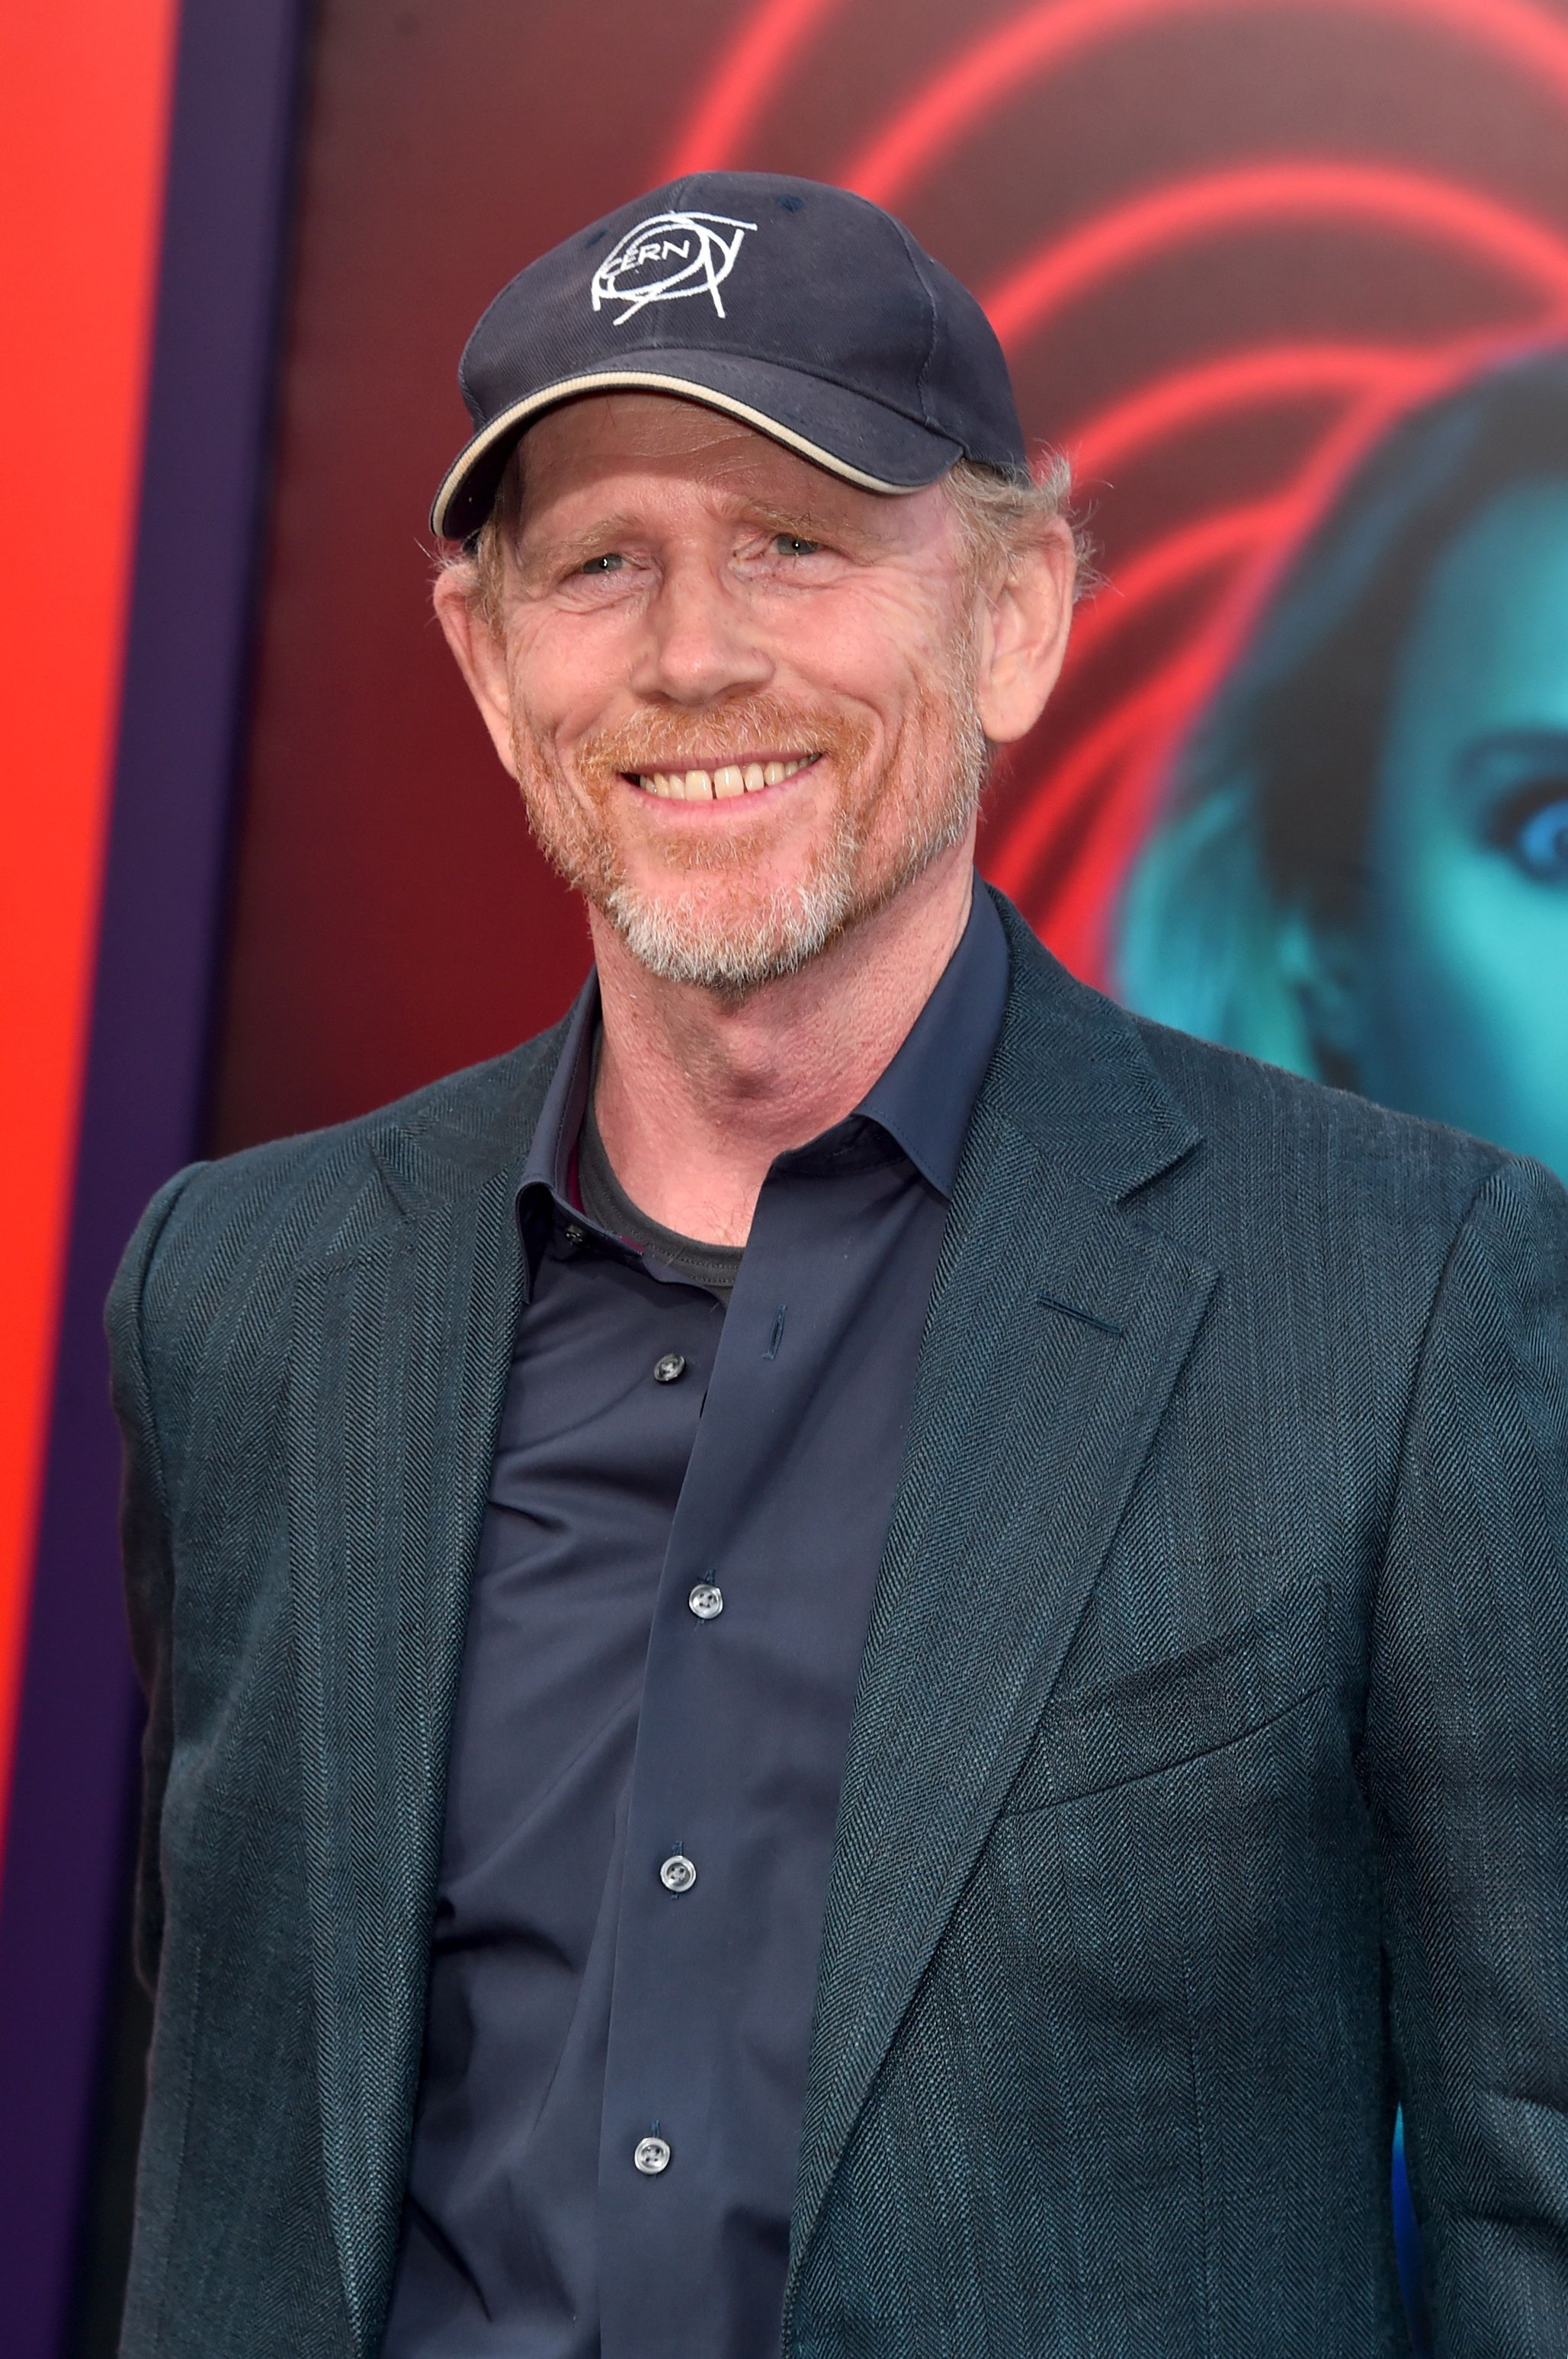 GettyImages-1005411740 Ron Howard